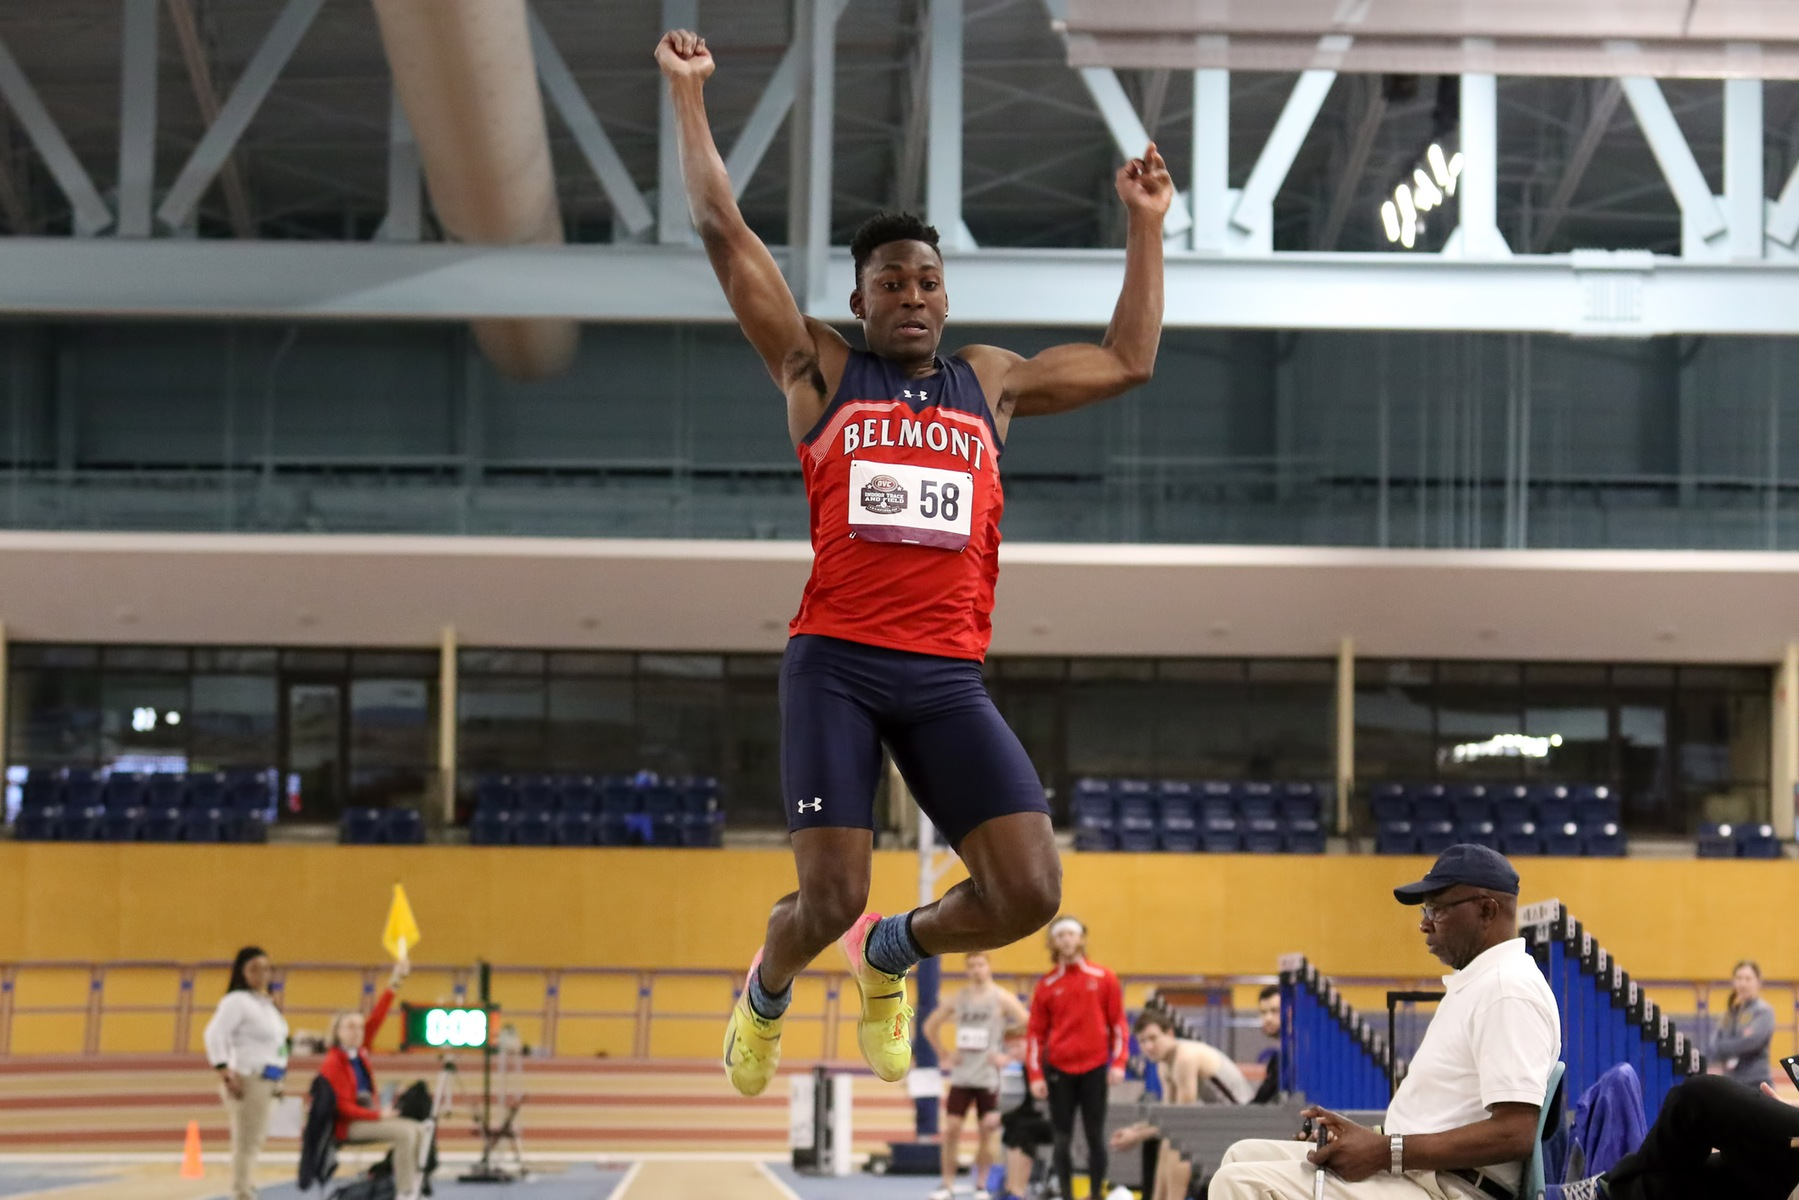 OVC Men's Indoor Championships: Day 1